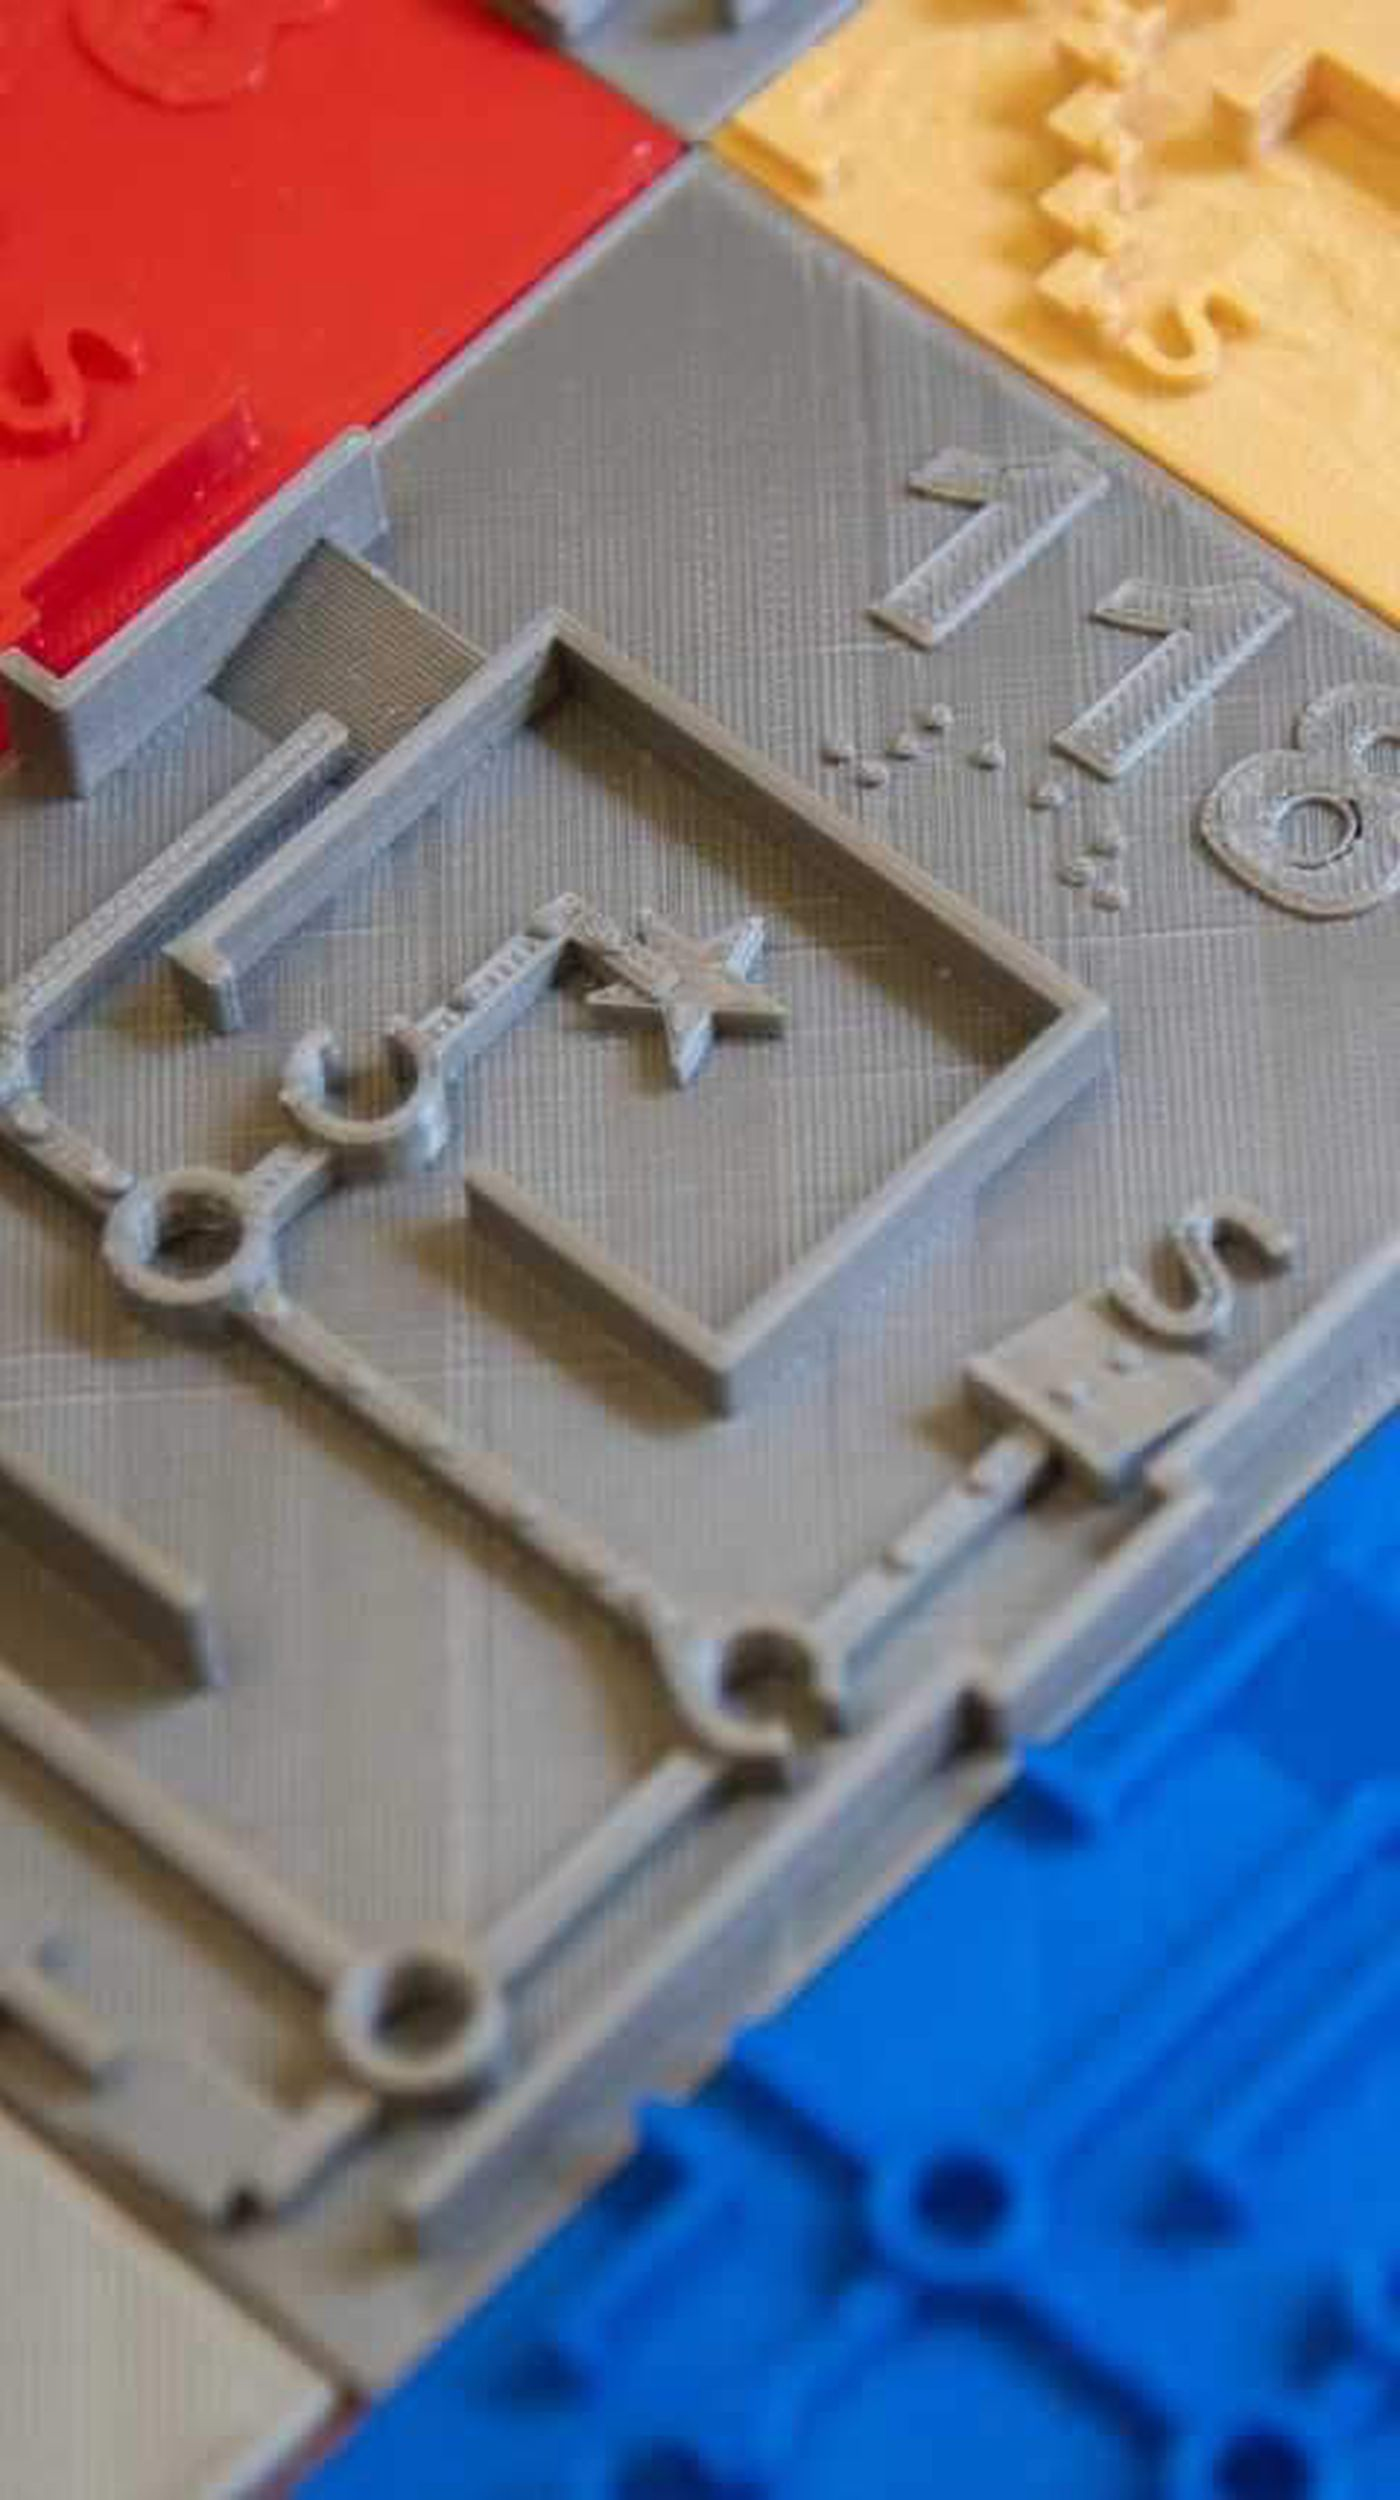 Unique tactile map made on 3-D printer could have widespread use on